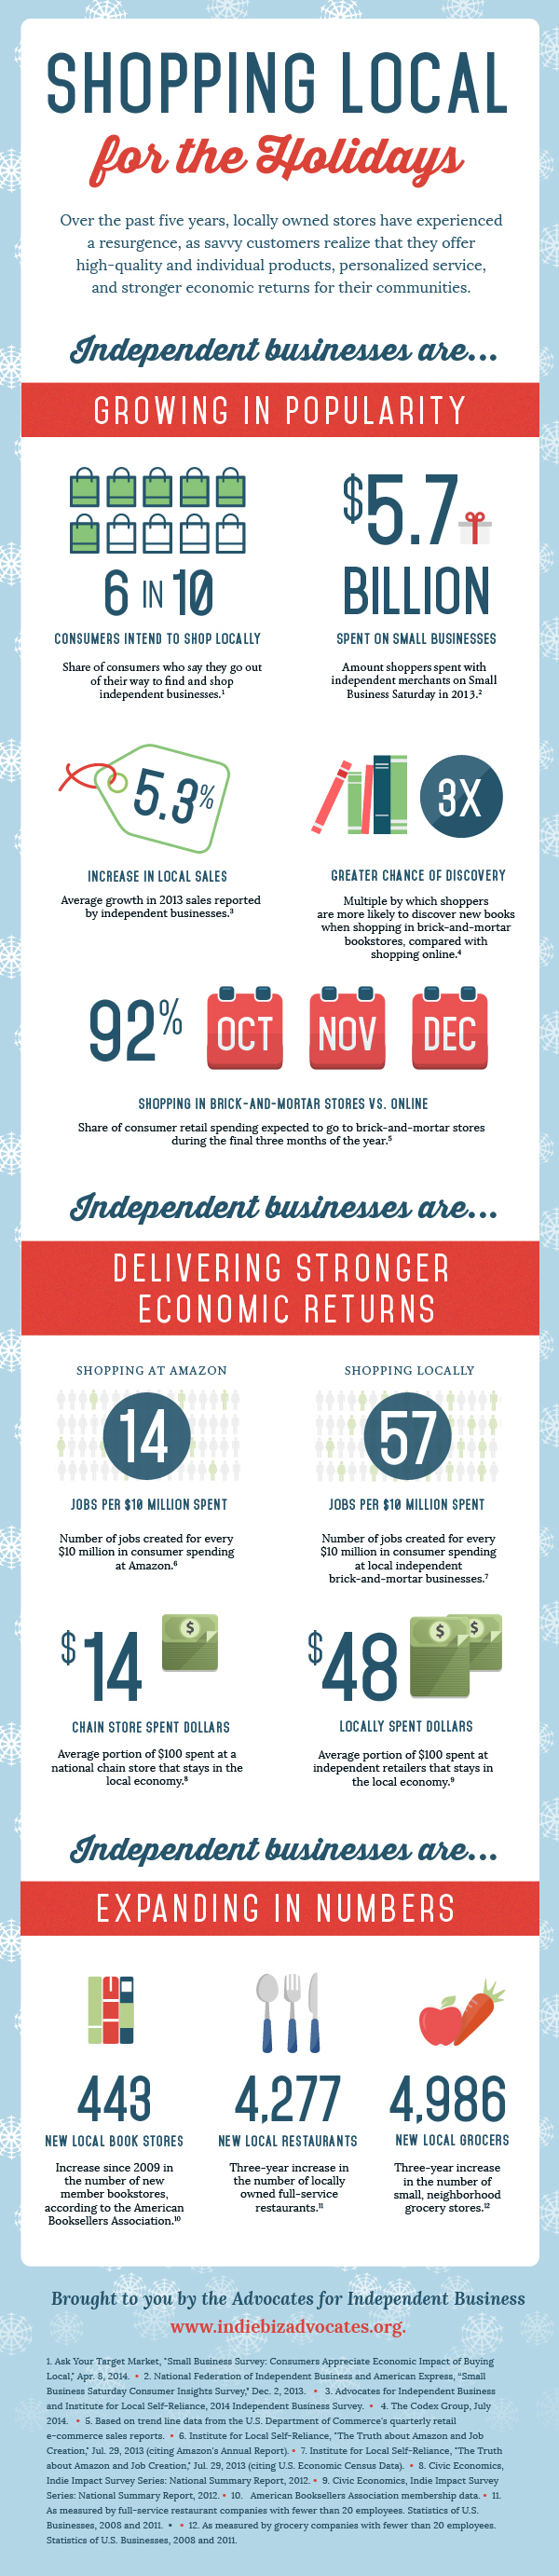 holidayshopping_infographic_final_hr